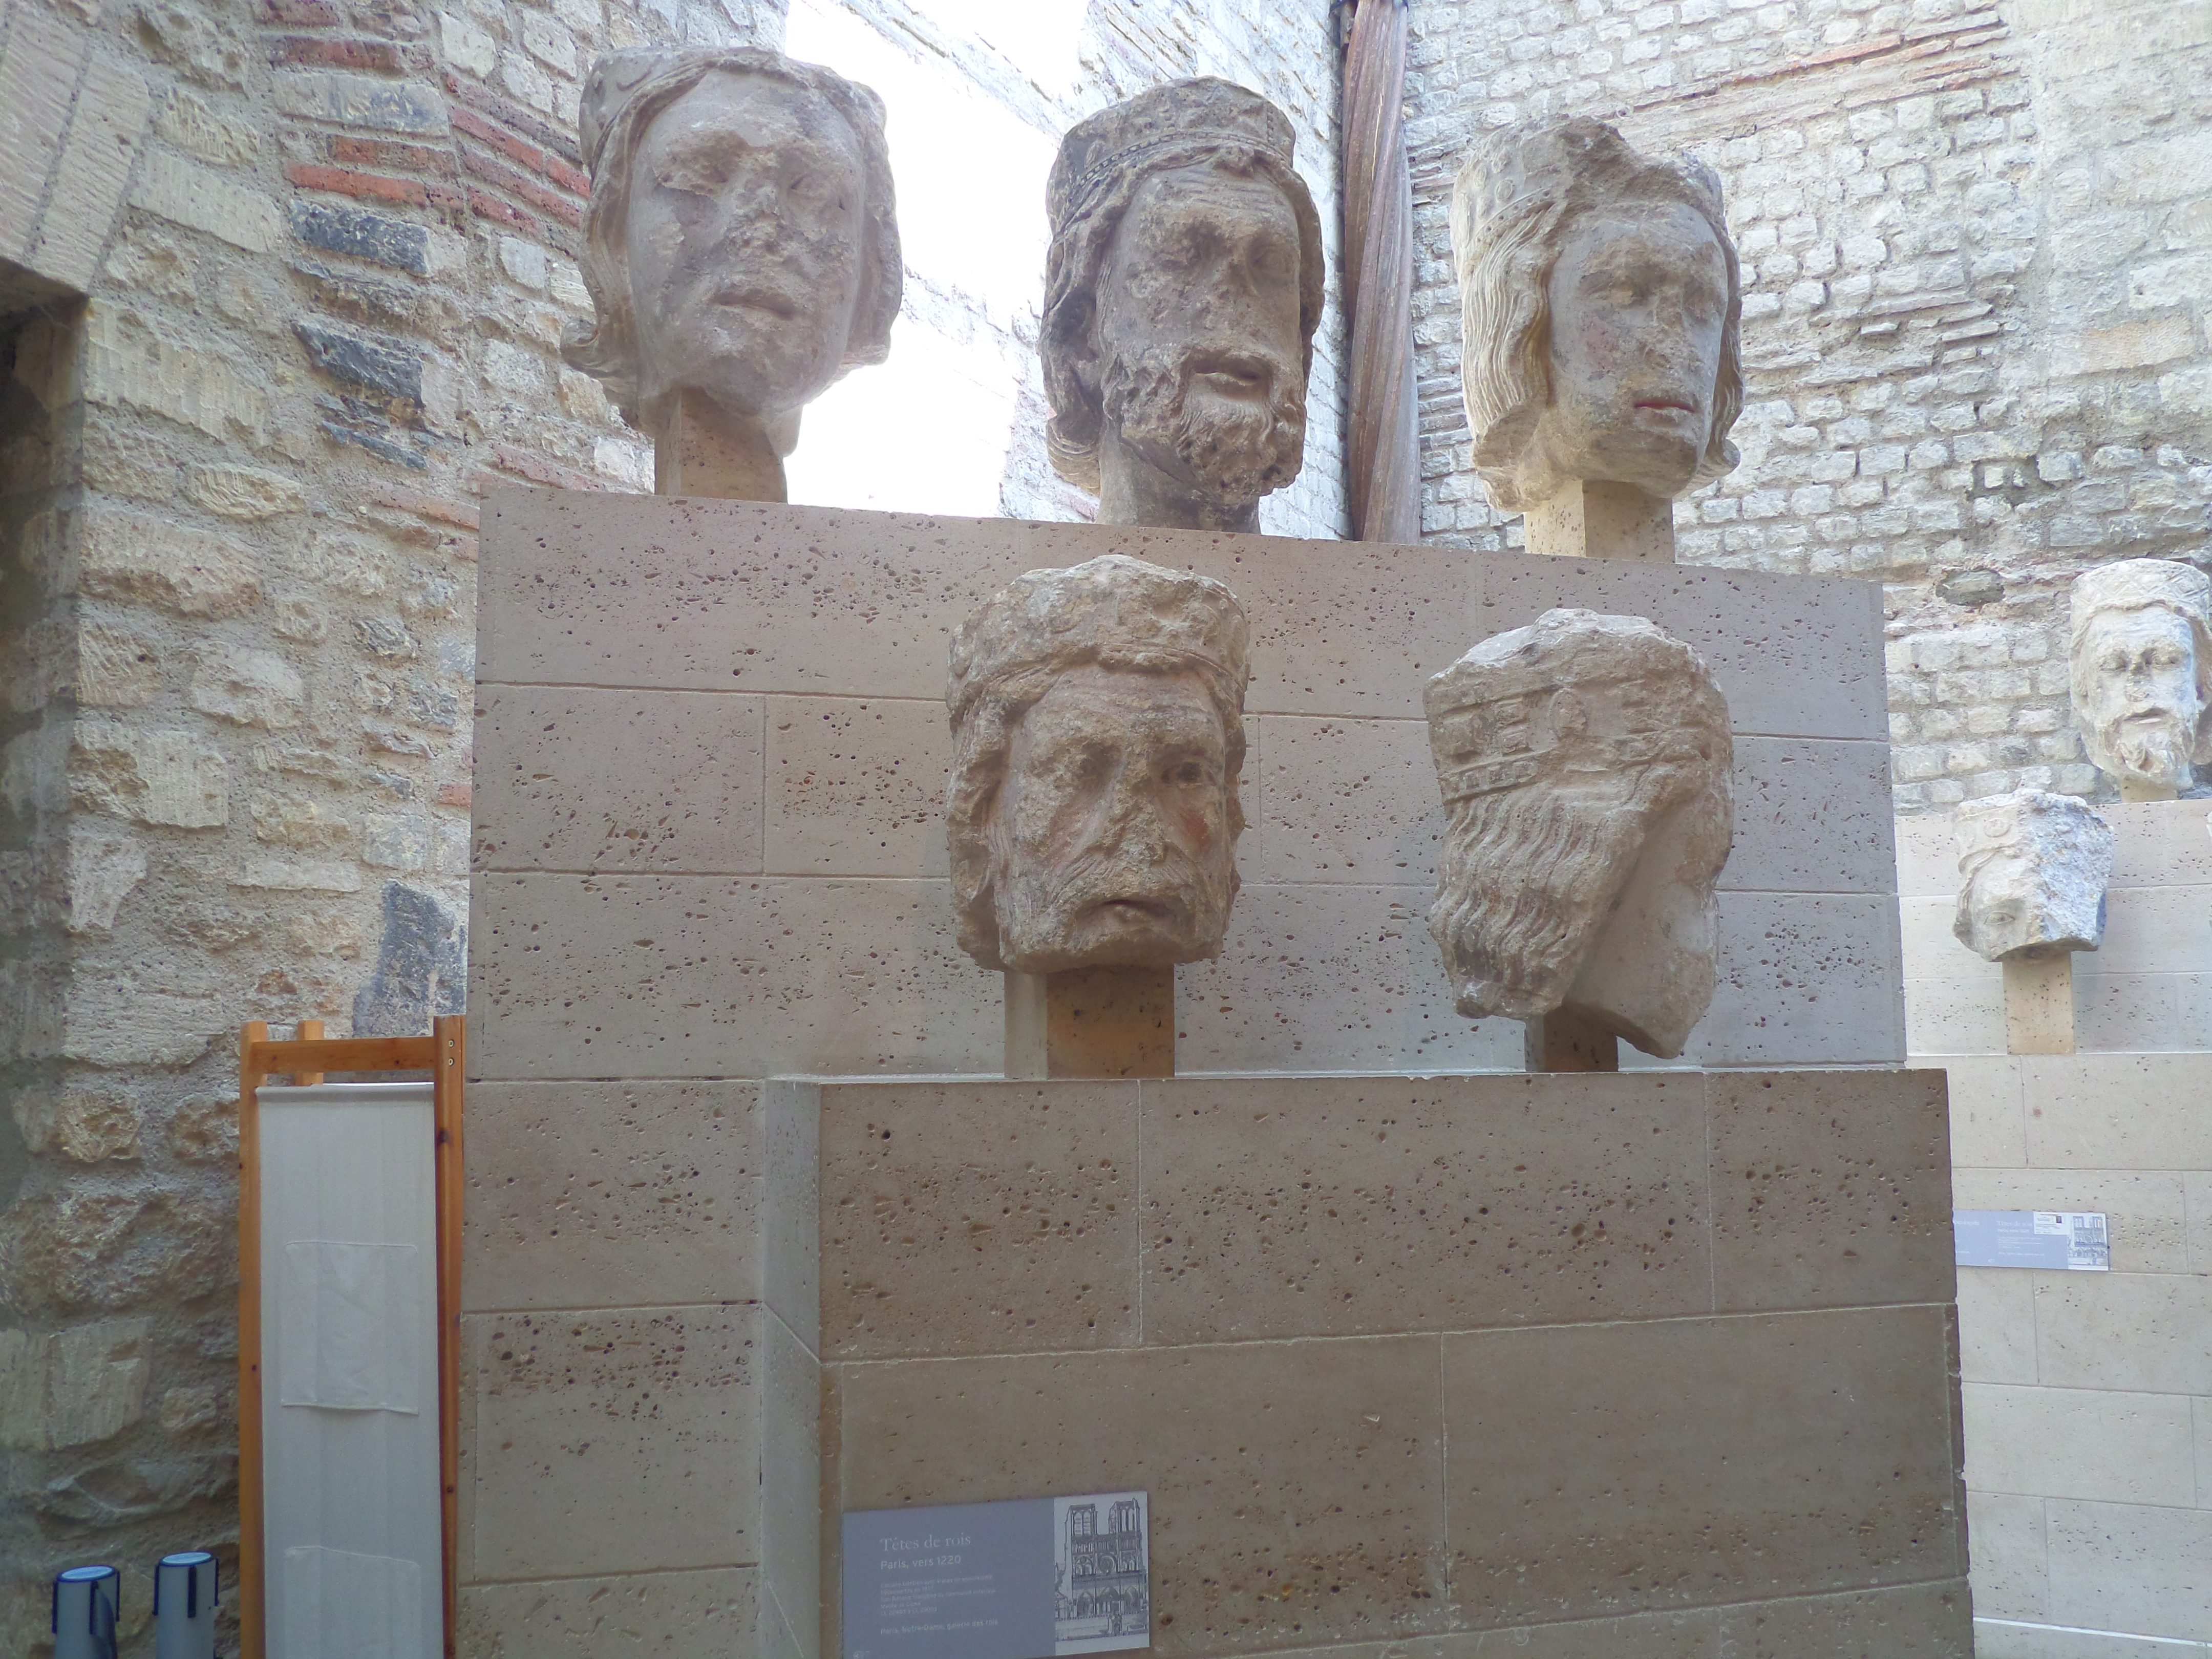 Heads of Kings of Judah, 1220-1230, from Notre Dame, Paris, France at Cluny Museum, Musee de Cluny